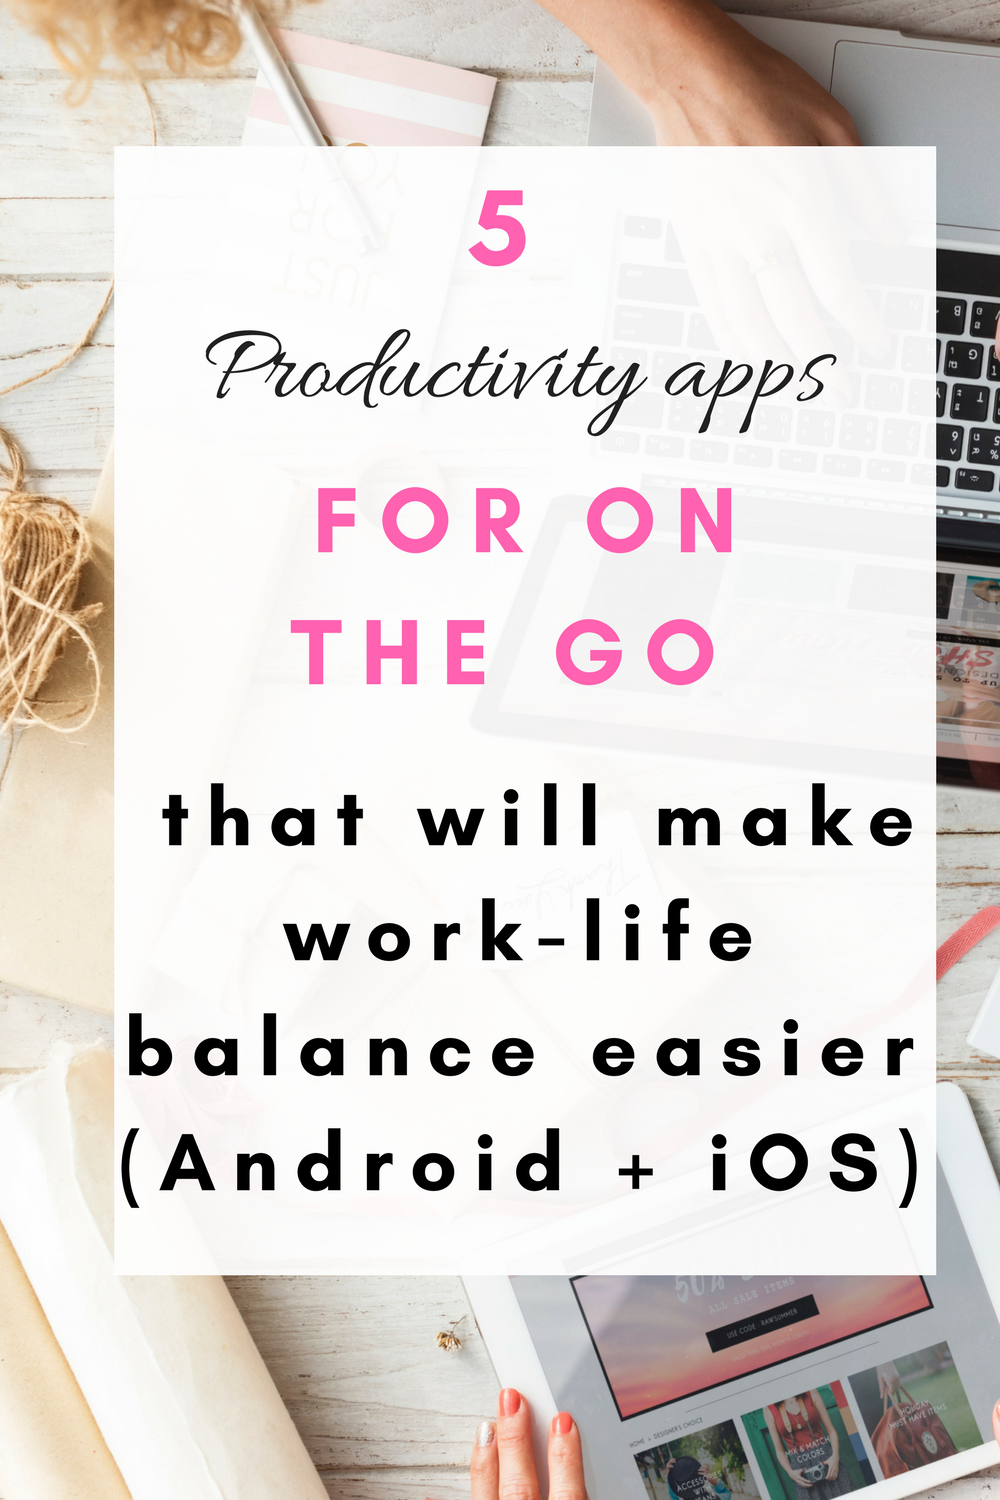 5 Productivity apps for on the go that will make work-life balance easier (Android + iOS)